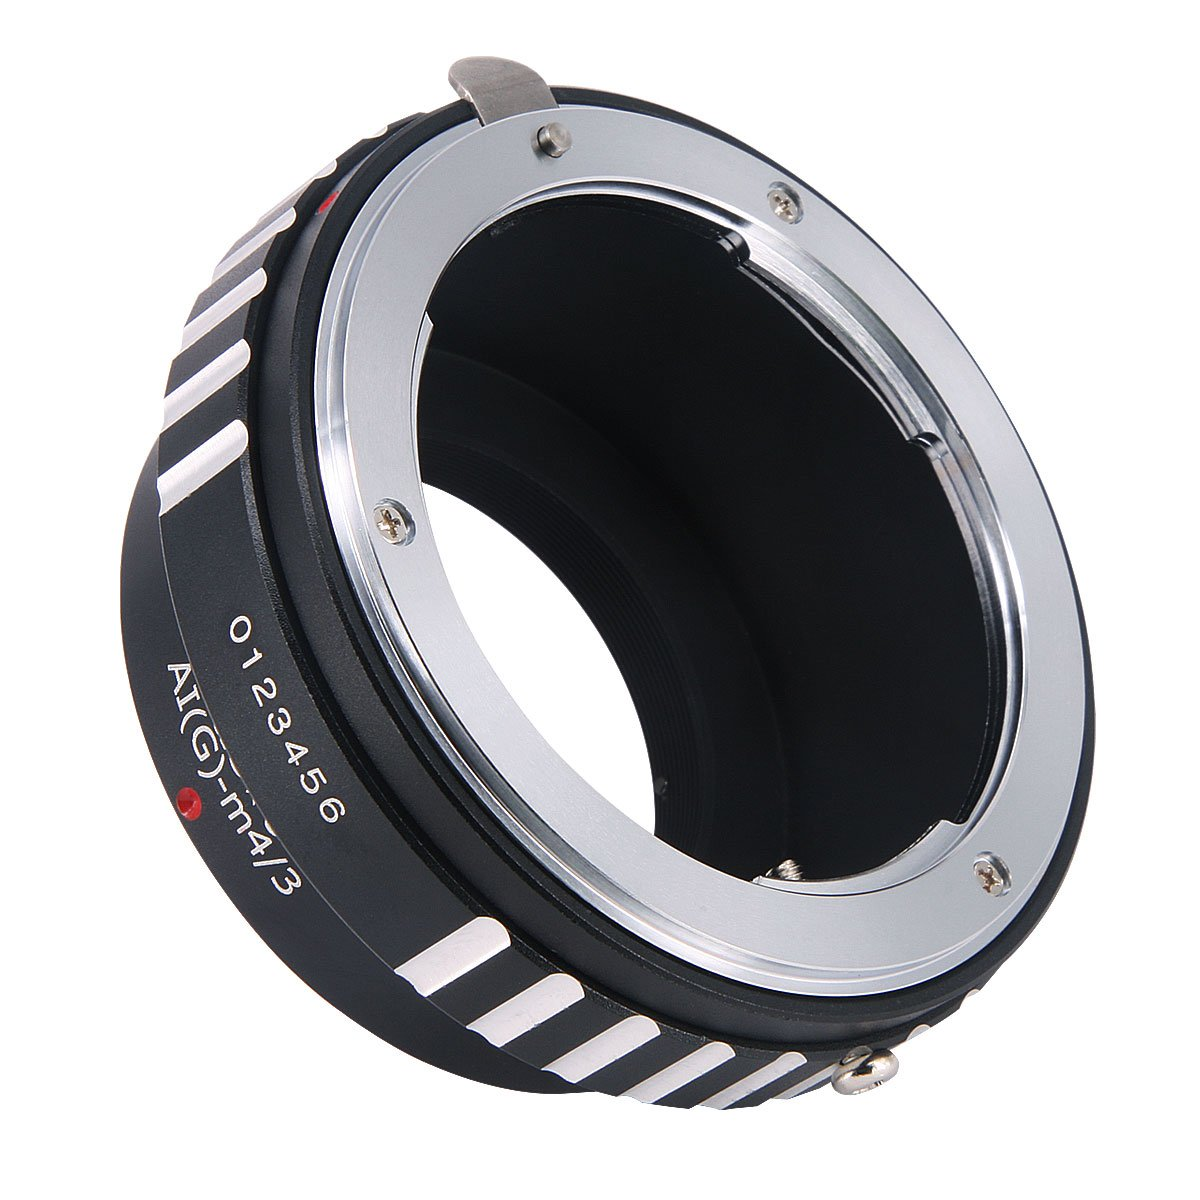 Haoge Manual Lens Mount Adapter for Nikon Nikkor G/F/AI/AIS/D Mount Lens to Olympus and Panasonic Micro Four Thirds MFT M4/3 M43 Mount Camera AI-G-M43